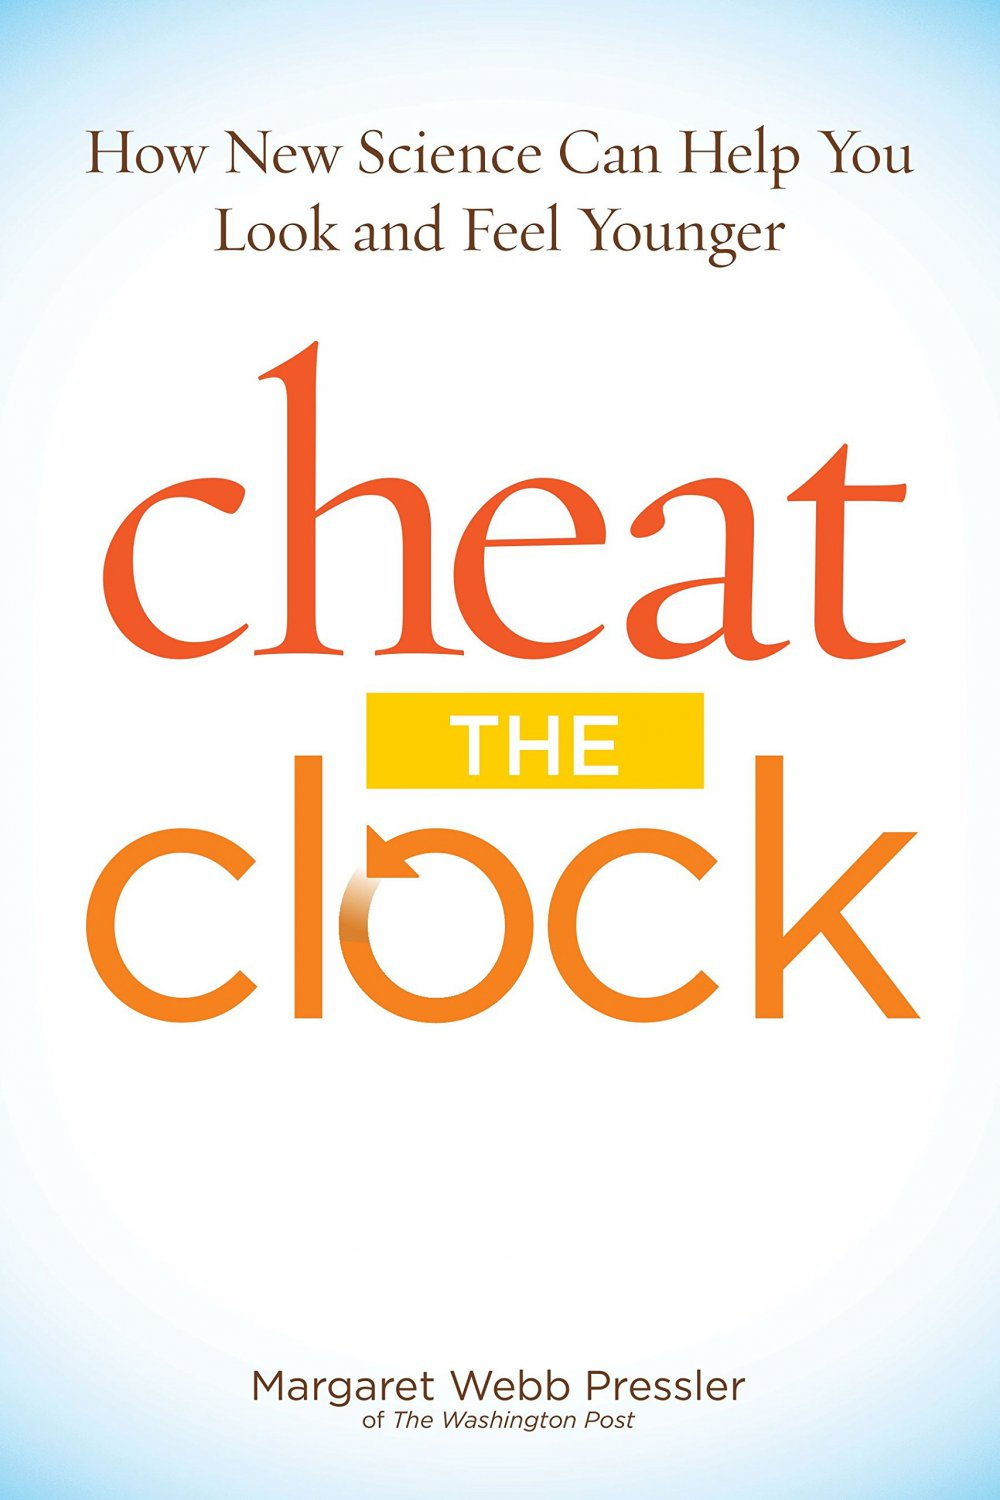 Cheat The Clock: How New Science Can Help You Look and Feel Younger